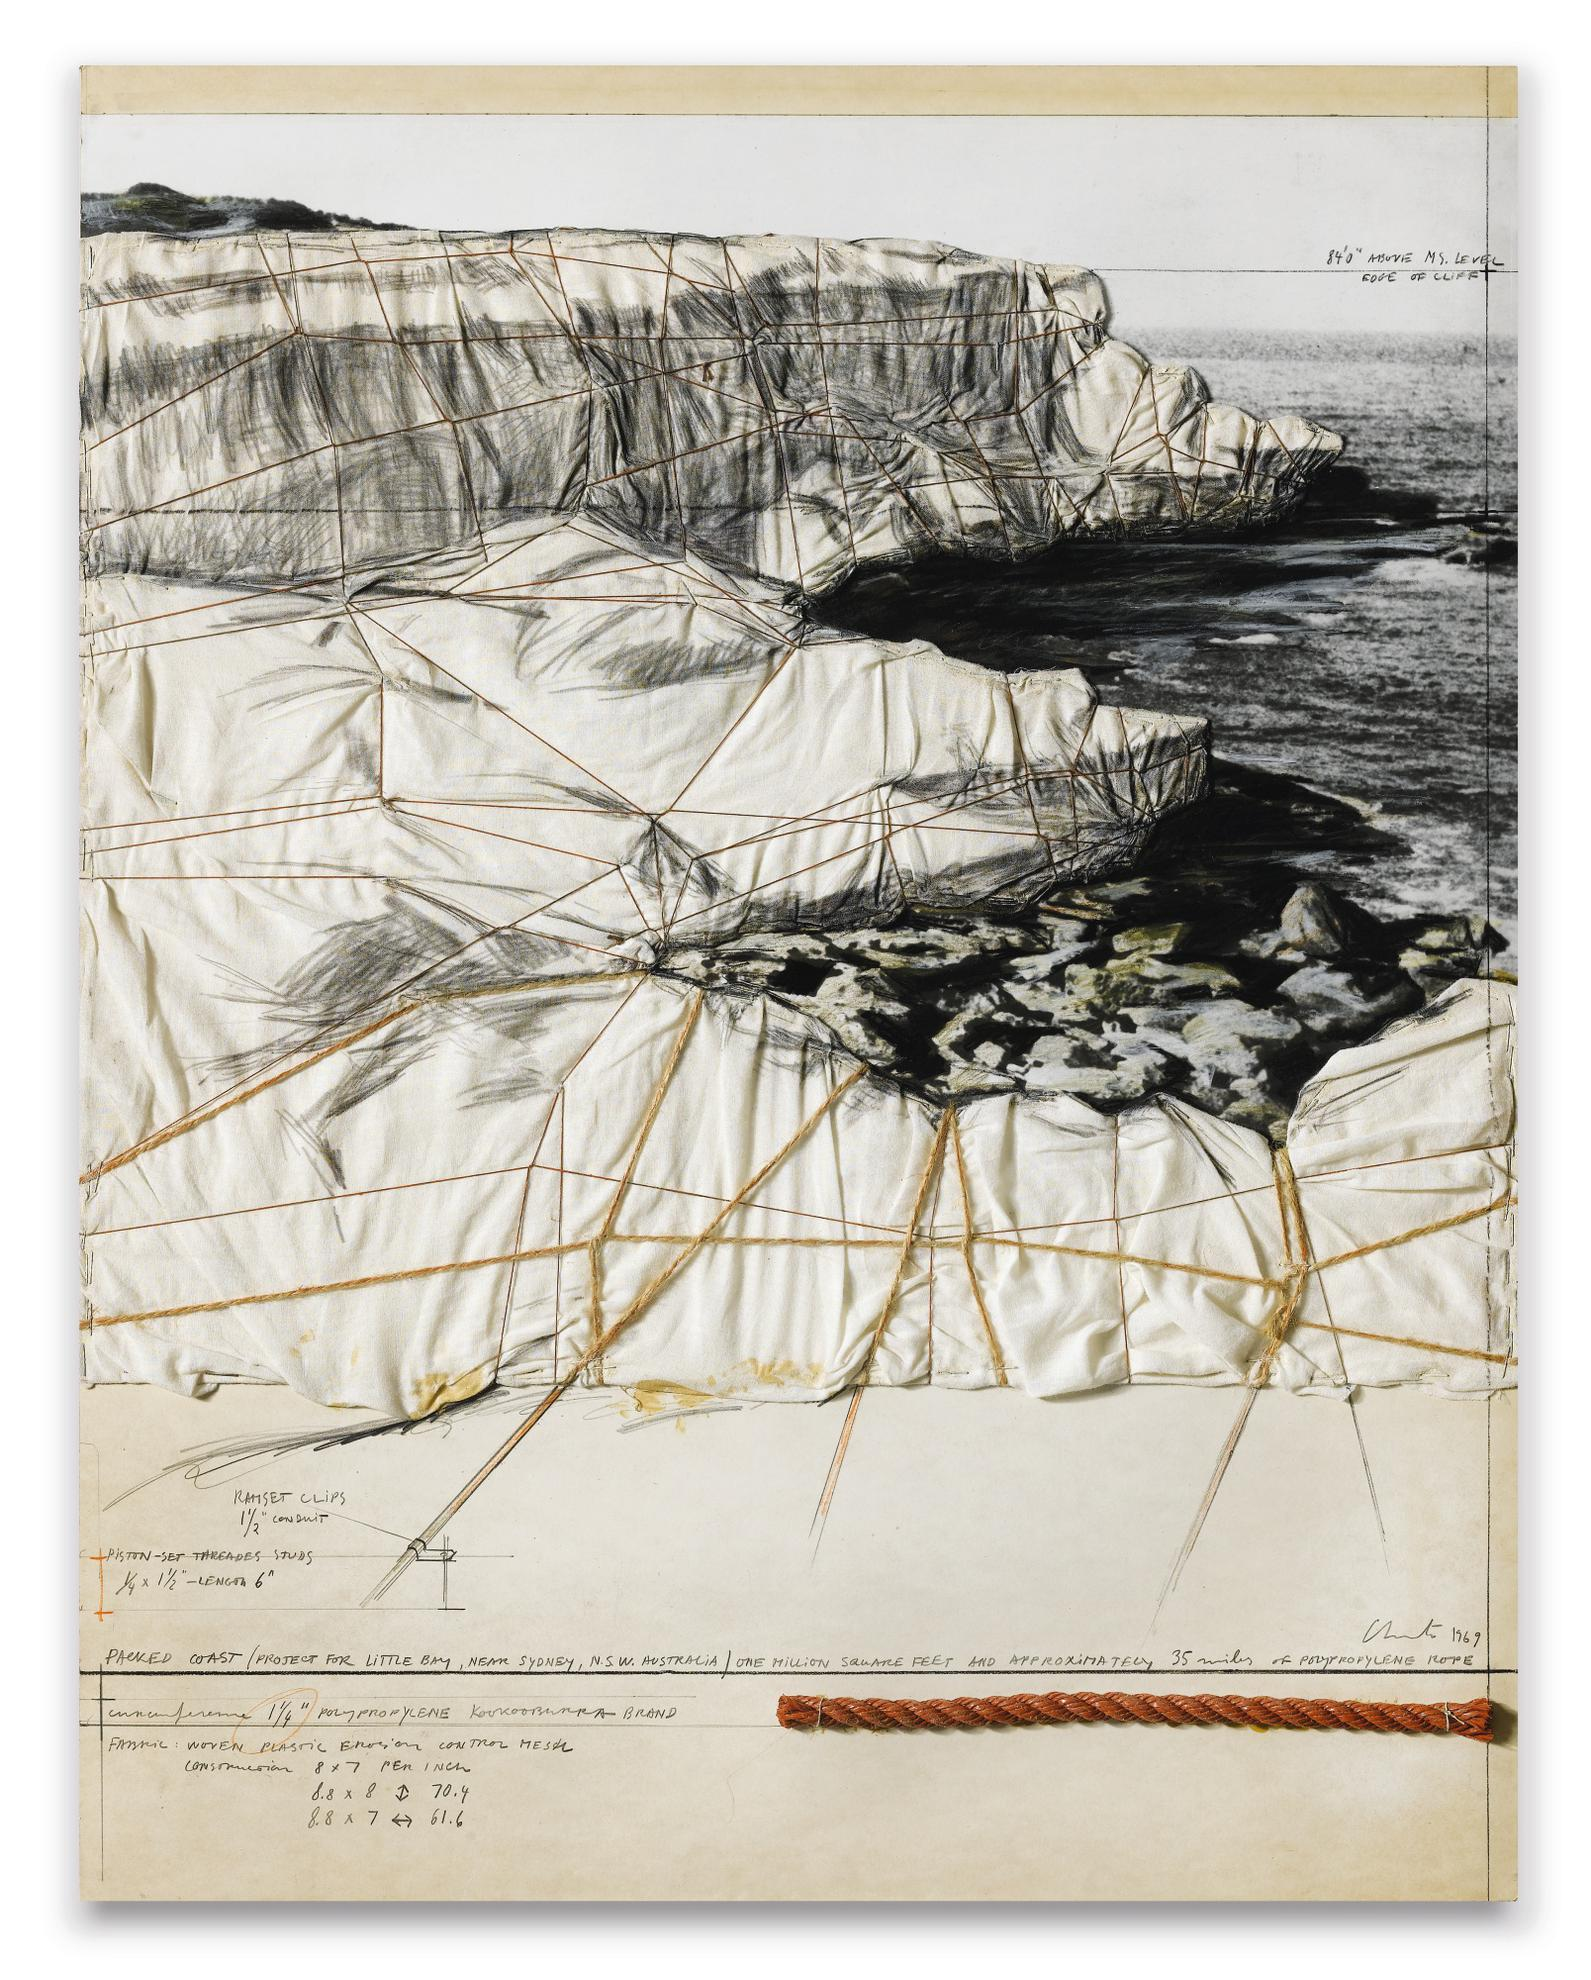 Christo and Jeanne-Claude-Packed Coast (Project For Little Bay, Near Sydney, N.S.W. Australia)-1969